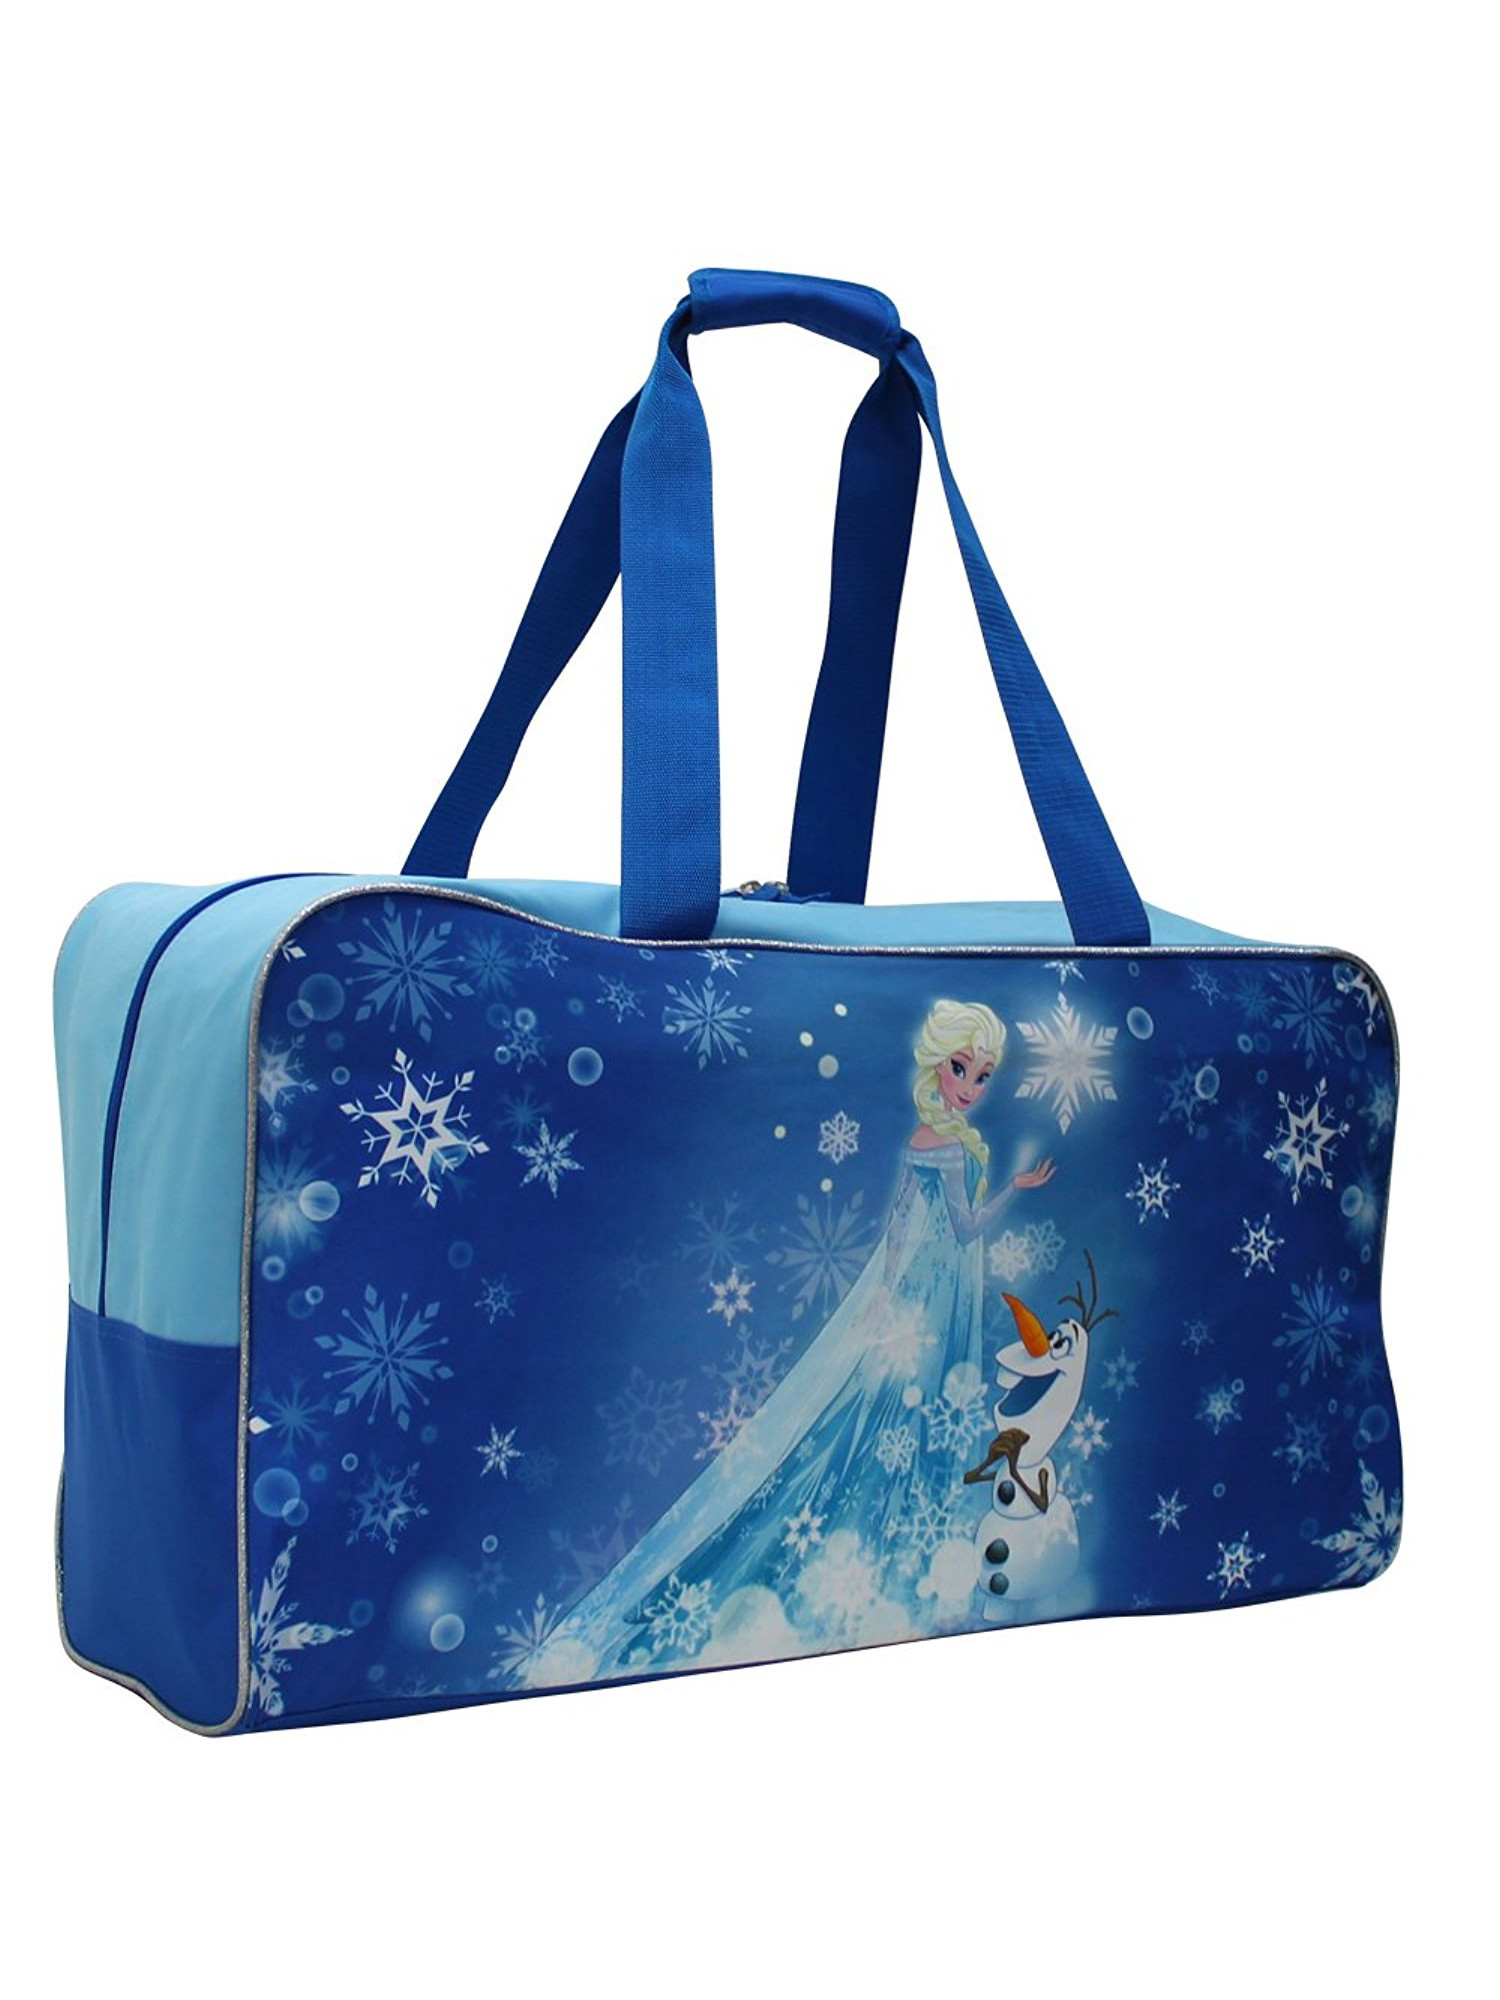 Frozen Elsa & Olaf 28 Inch Junior Hockey Bag Blue by Frozen